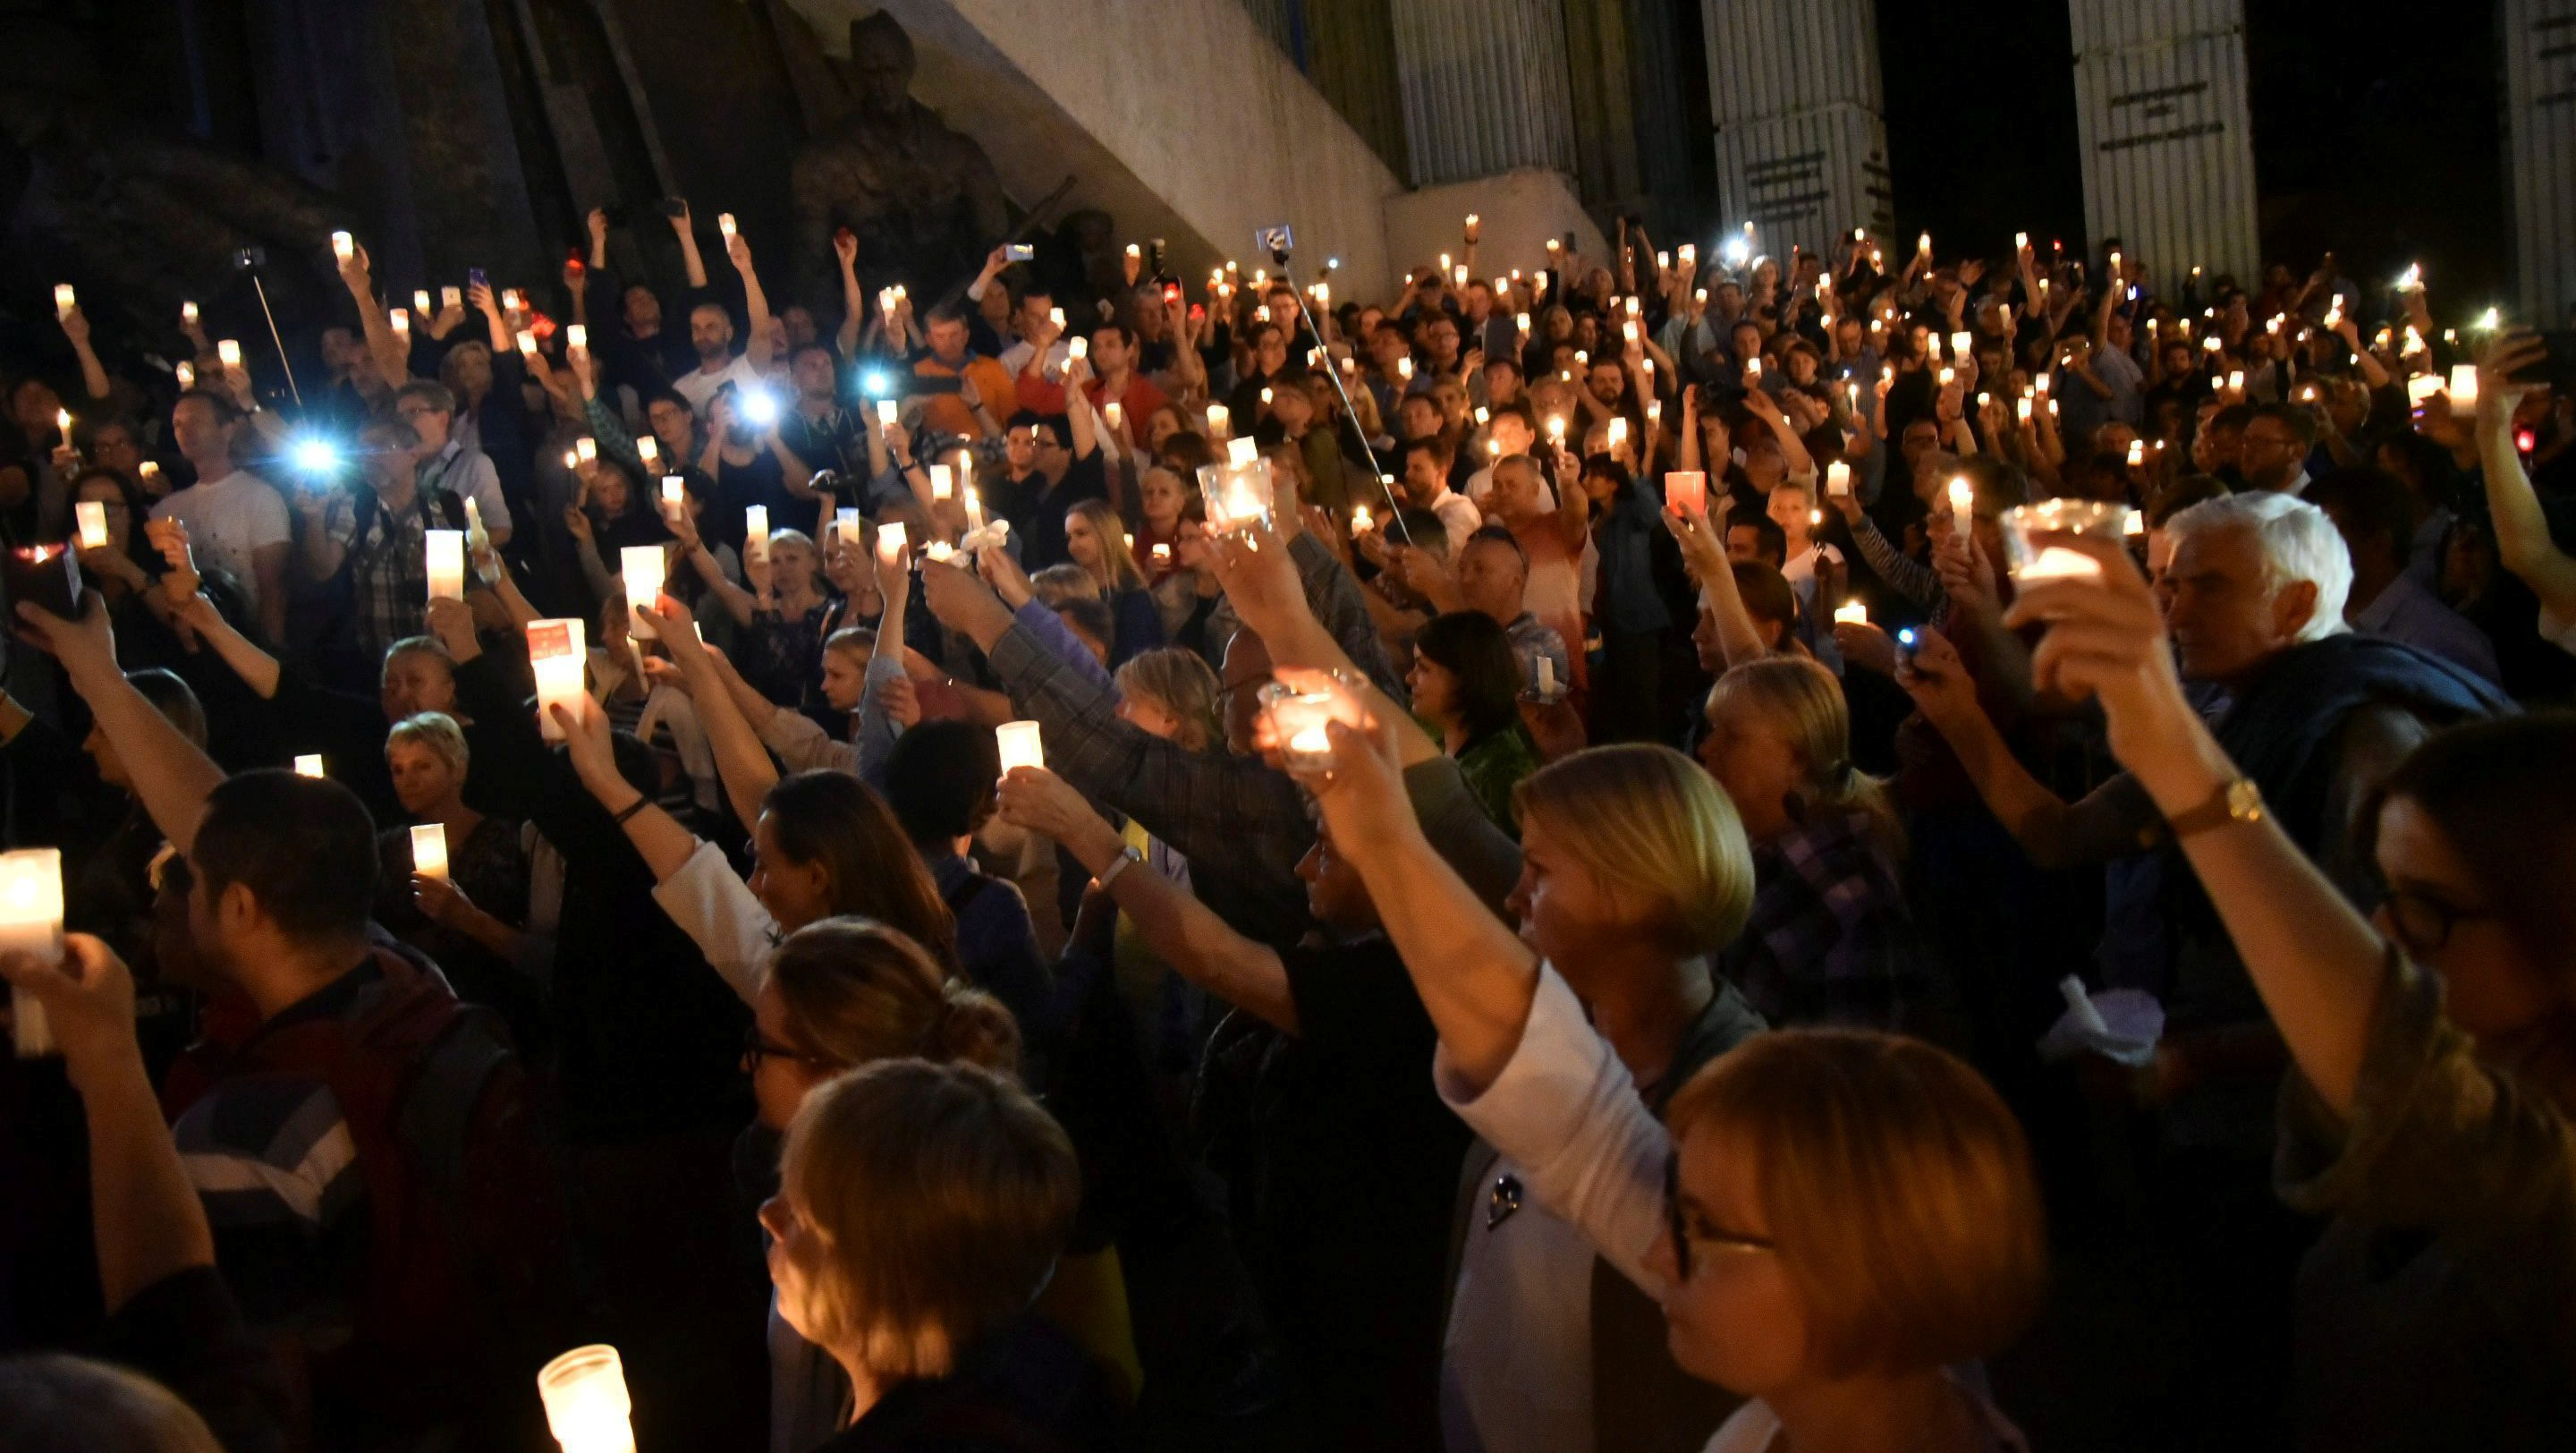 Protesters hold candles during a candlelight rally to protest against judicial reforms in front of the Supreme Court in Warsaw, Poland, July 16, 2017. Agencja Gazeta/Franciszek Mazur via REUTERS ATTENTION EDITORS - THIS IMAGE HAS BEEN SUPPLIED BY A THIRD PARTY. POLAND OUT. - RTX3BPGT